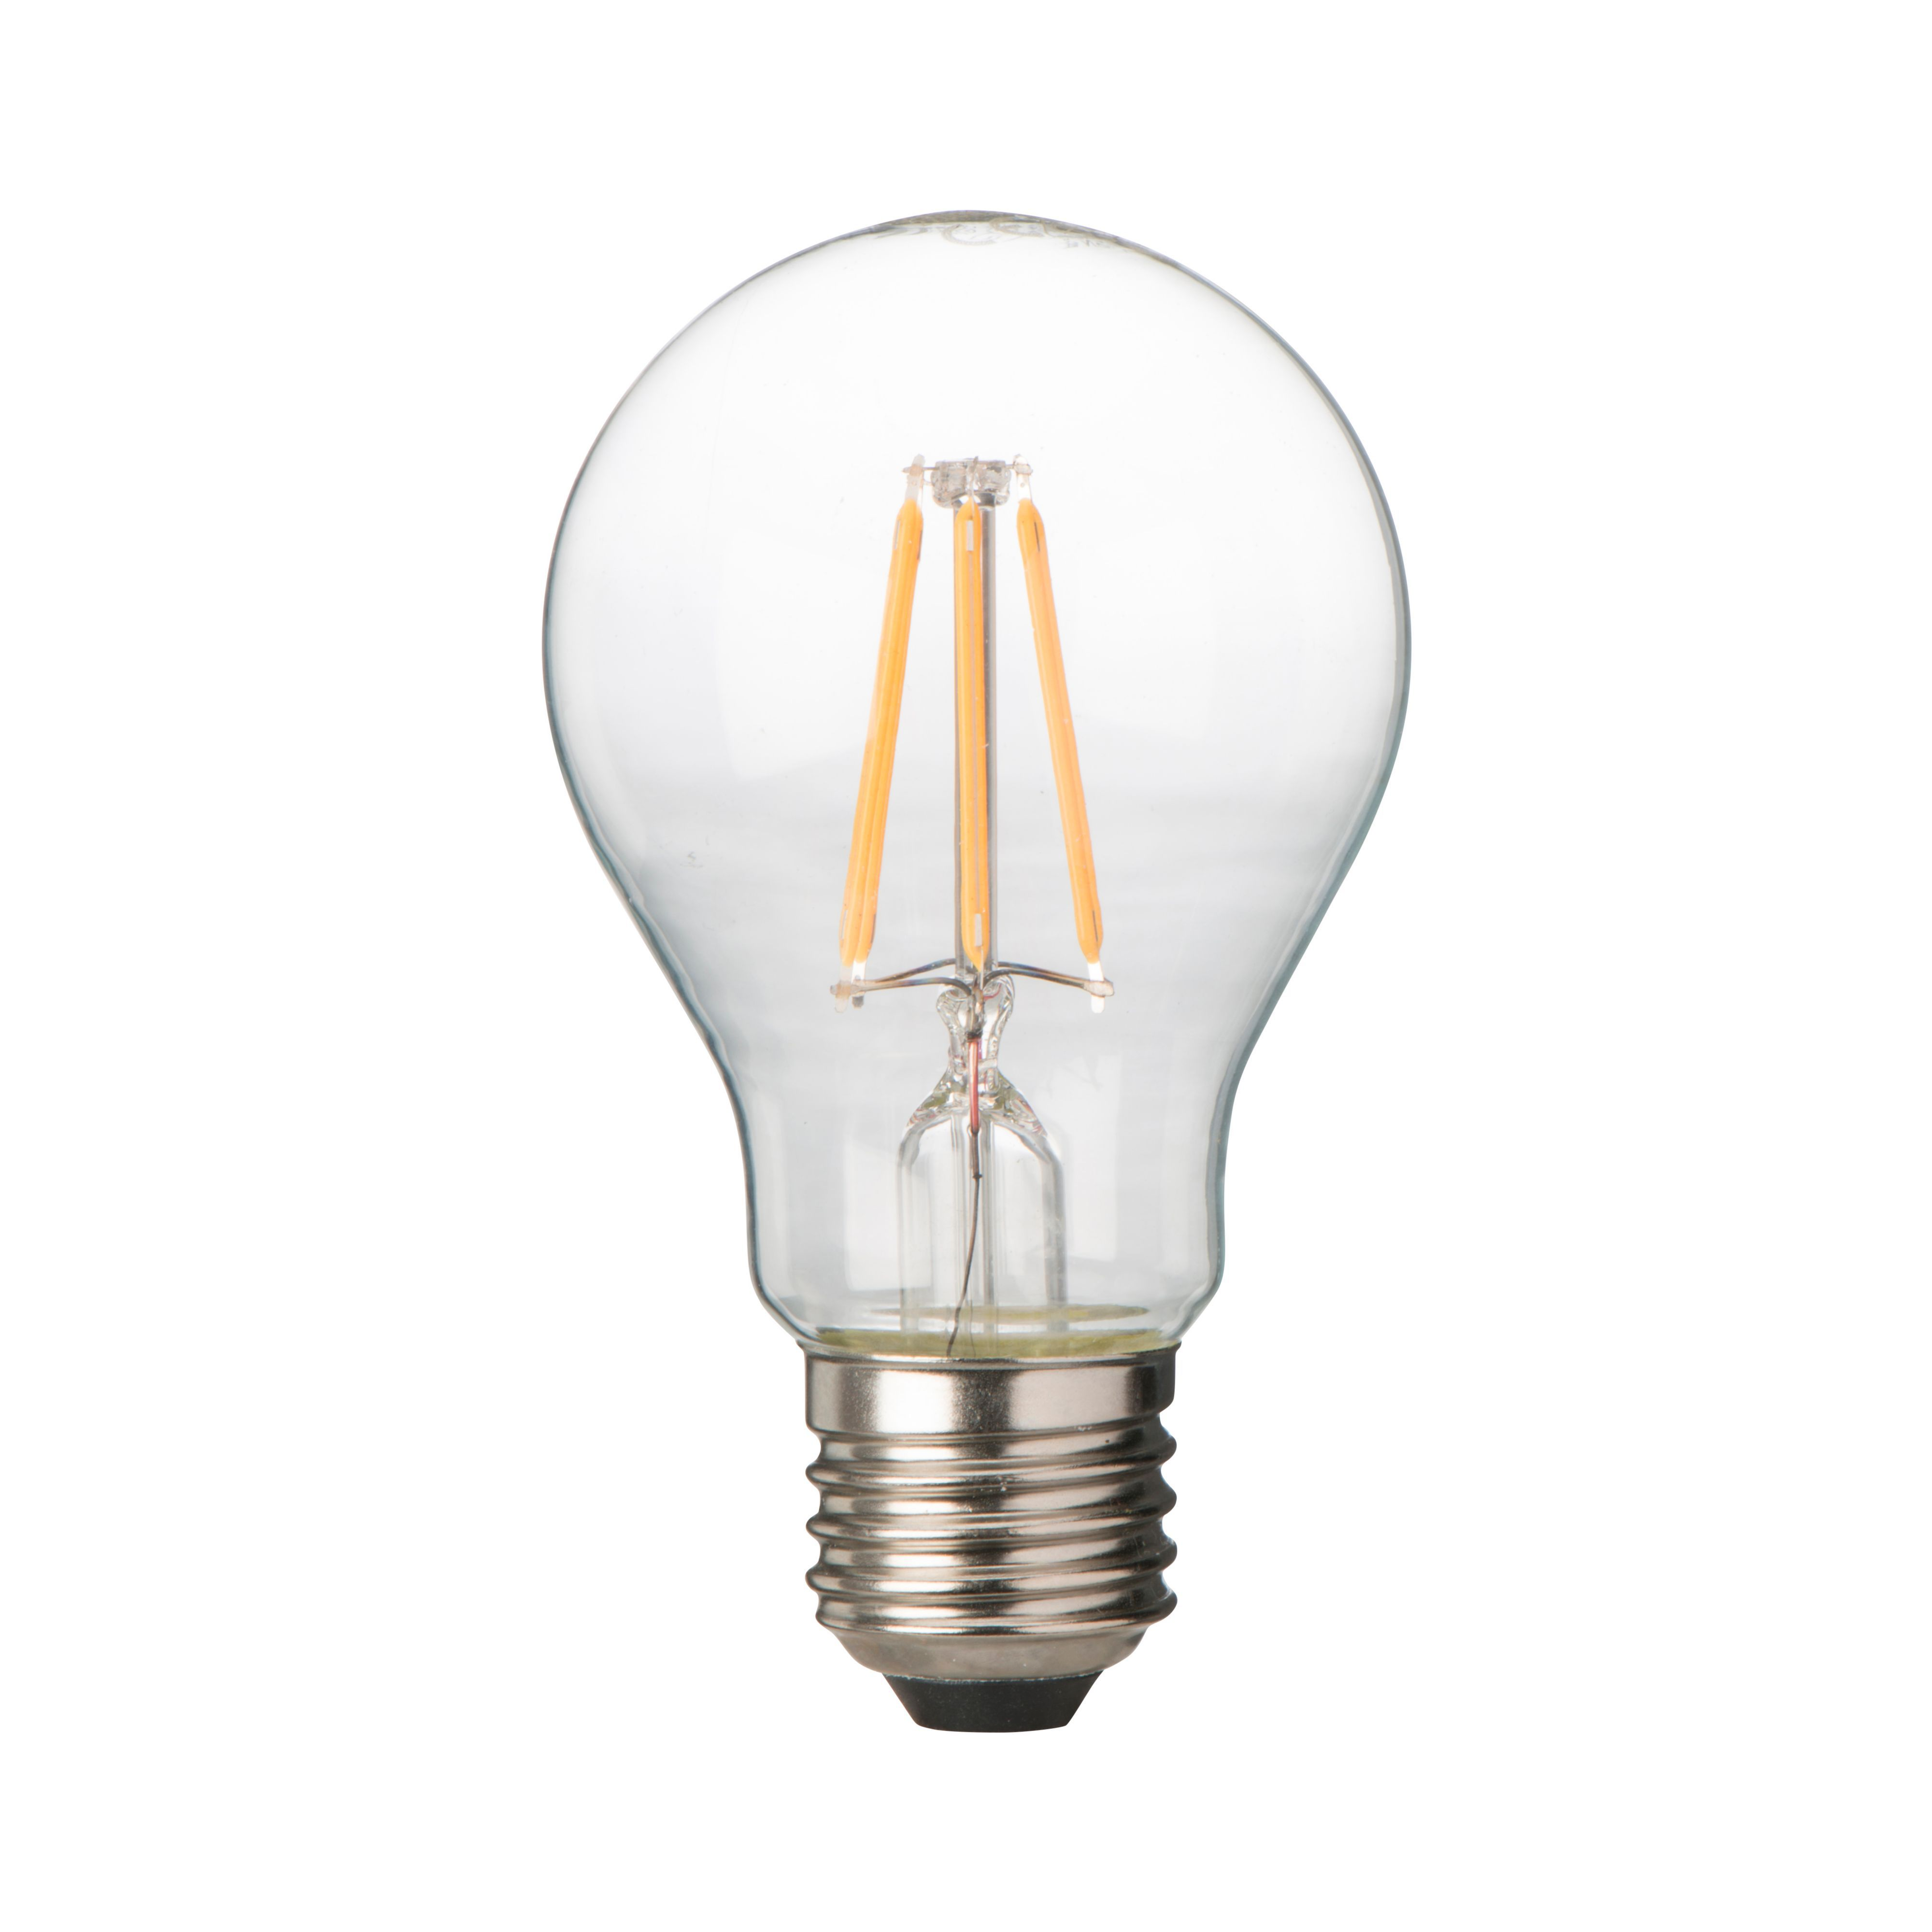 diall e27 6w led filament classic light bulb departments diy at b q. Black Bedroom Furniture Sets. Home Design Ideas